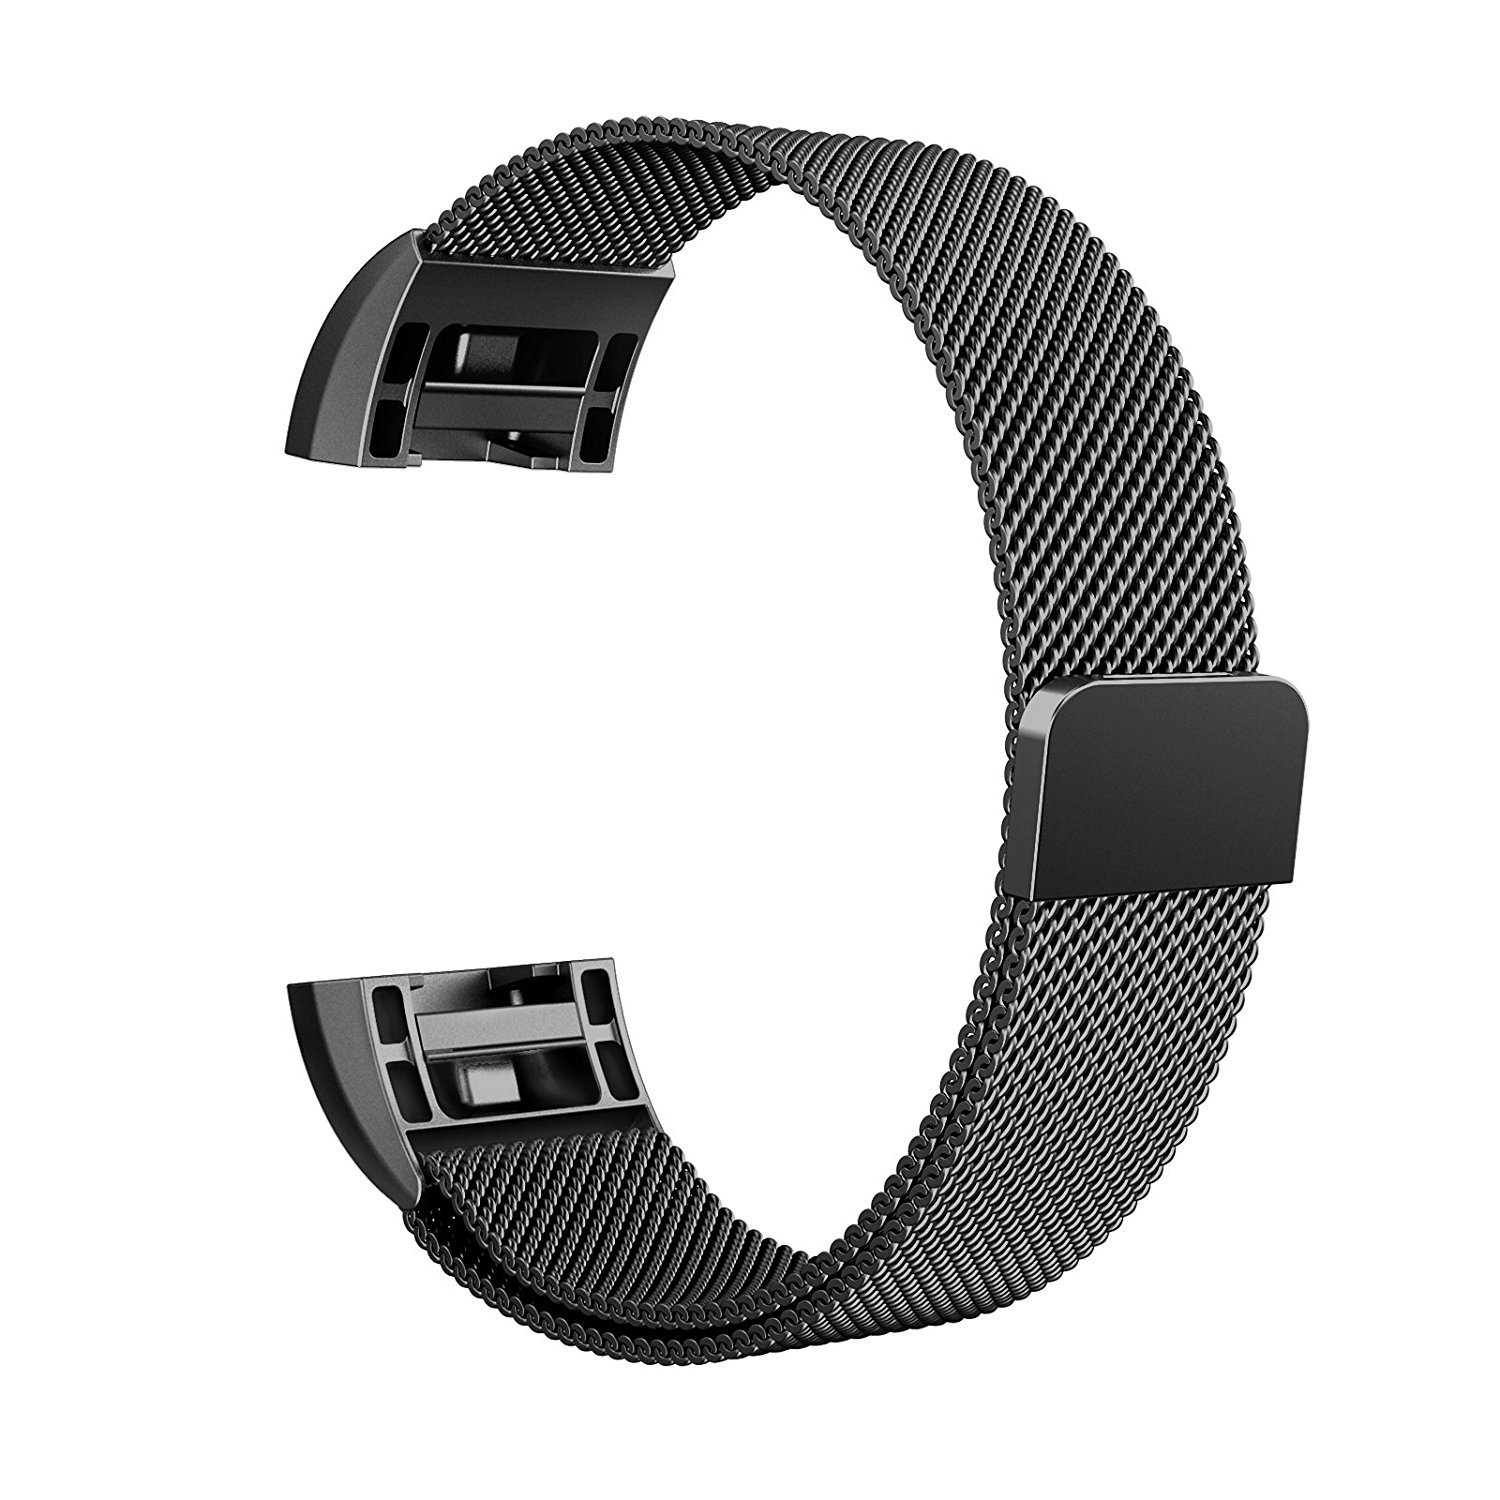 black steel mesh new xsmall wristband band strap accessories for fitbit charge 2 ebay. Black Bedroom Furniture Sets. Home Design Ideas